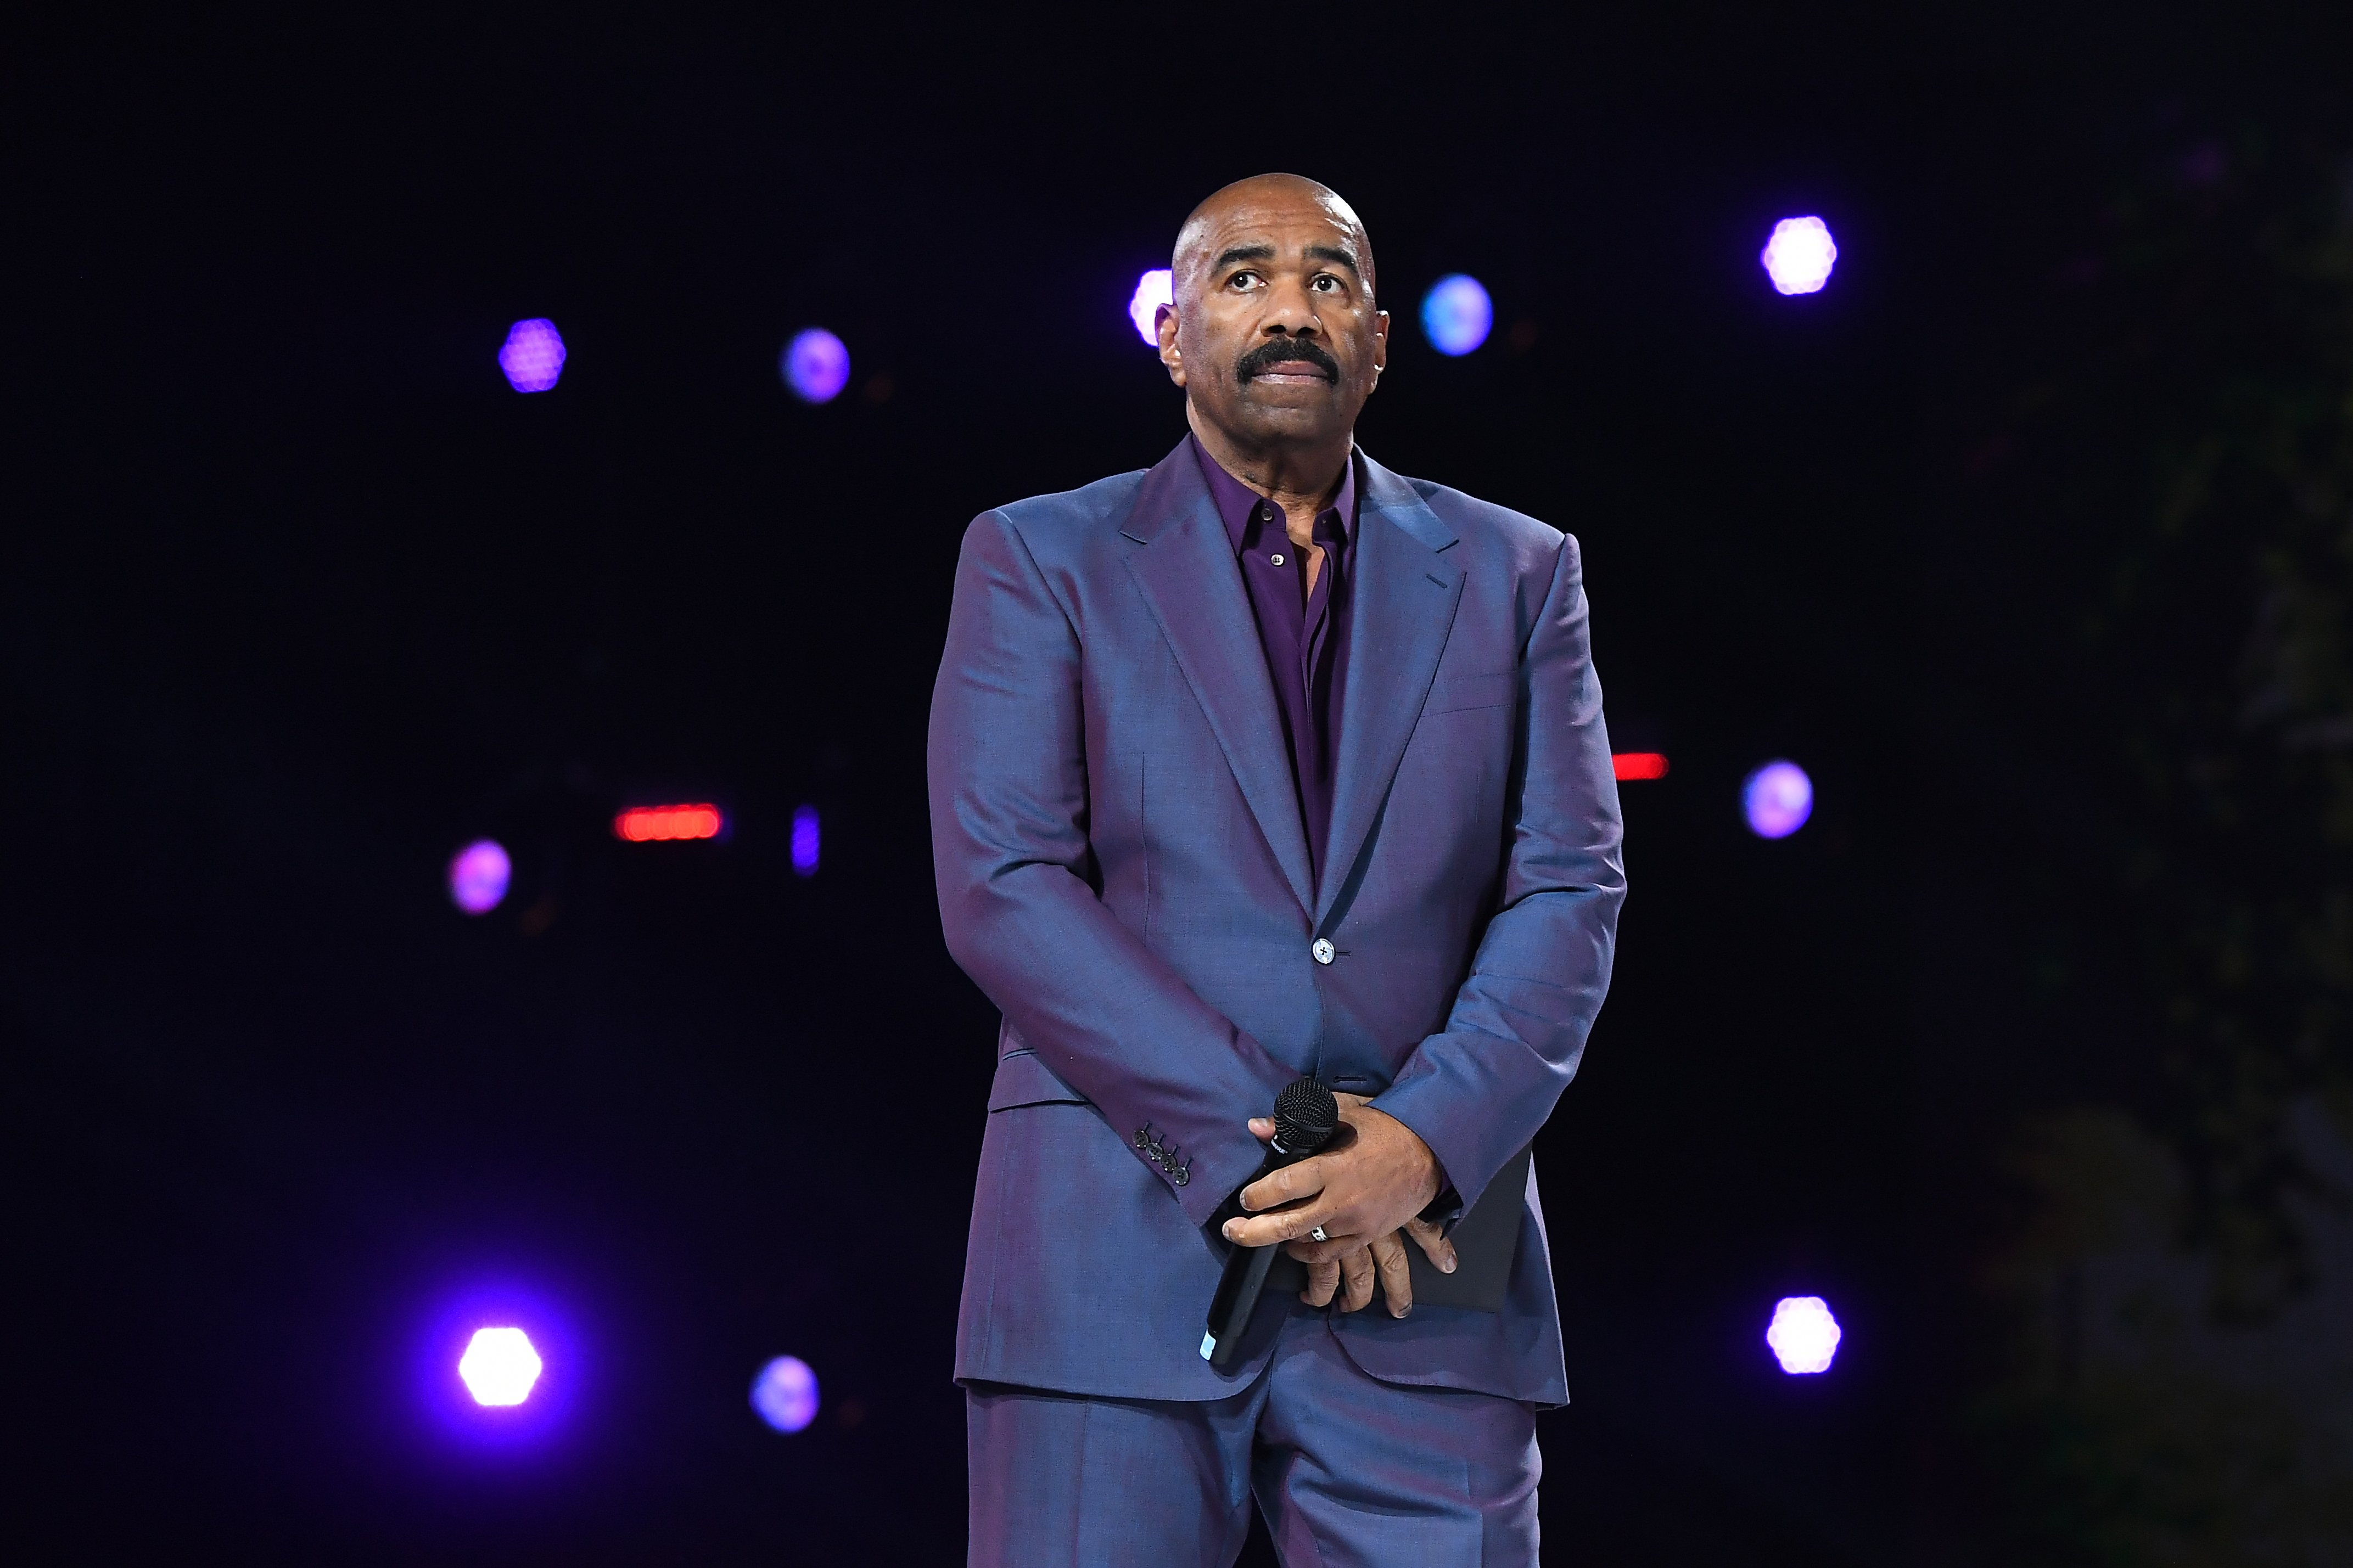 Steve Harvey onstage during the Beloved Benefit at Mercedes-Benz Stadium on March 21, 2019 in Atlanta, Georgia | Photo: Getty Images